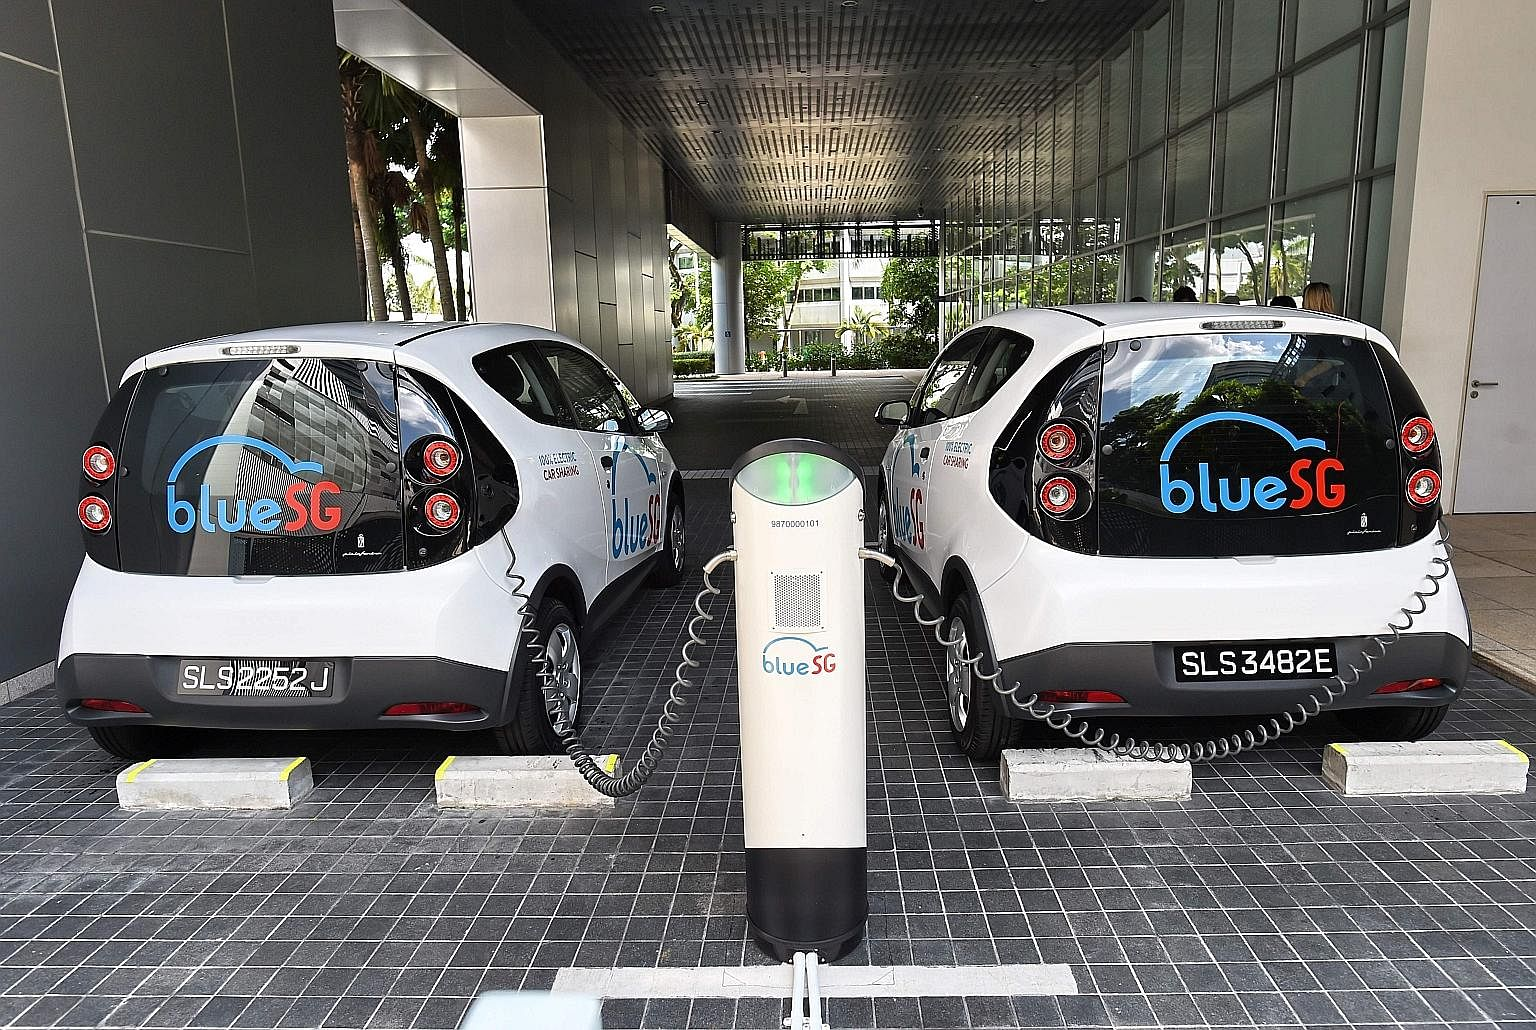 BlueSG aims to grow its fleet of electric vehicles to about 1,000 and have 2,000 charging points by 2020. Users can book a vehicle via a mobile app, pick the car up at a charging station and return it at a station that is nearest to their destination